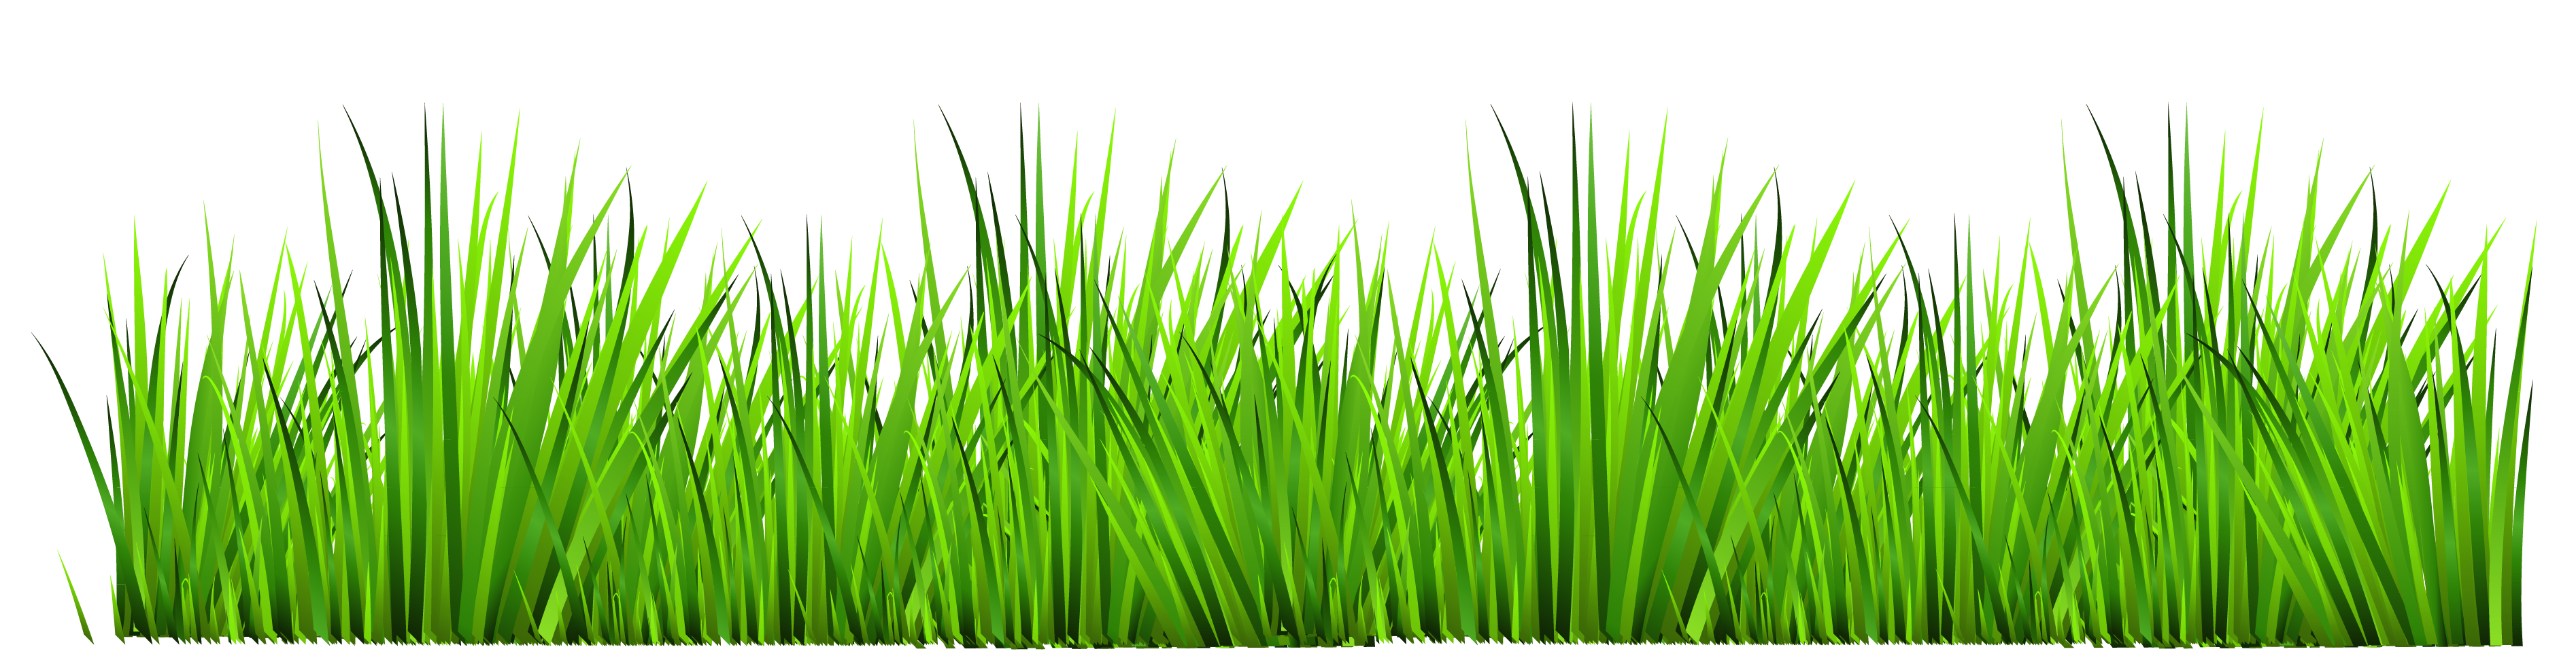 Grass flower clipart picture free download grass-clipart-transparent-grass-clipart-free-clip-art-images.png ... picture free download